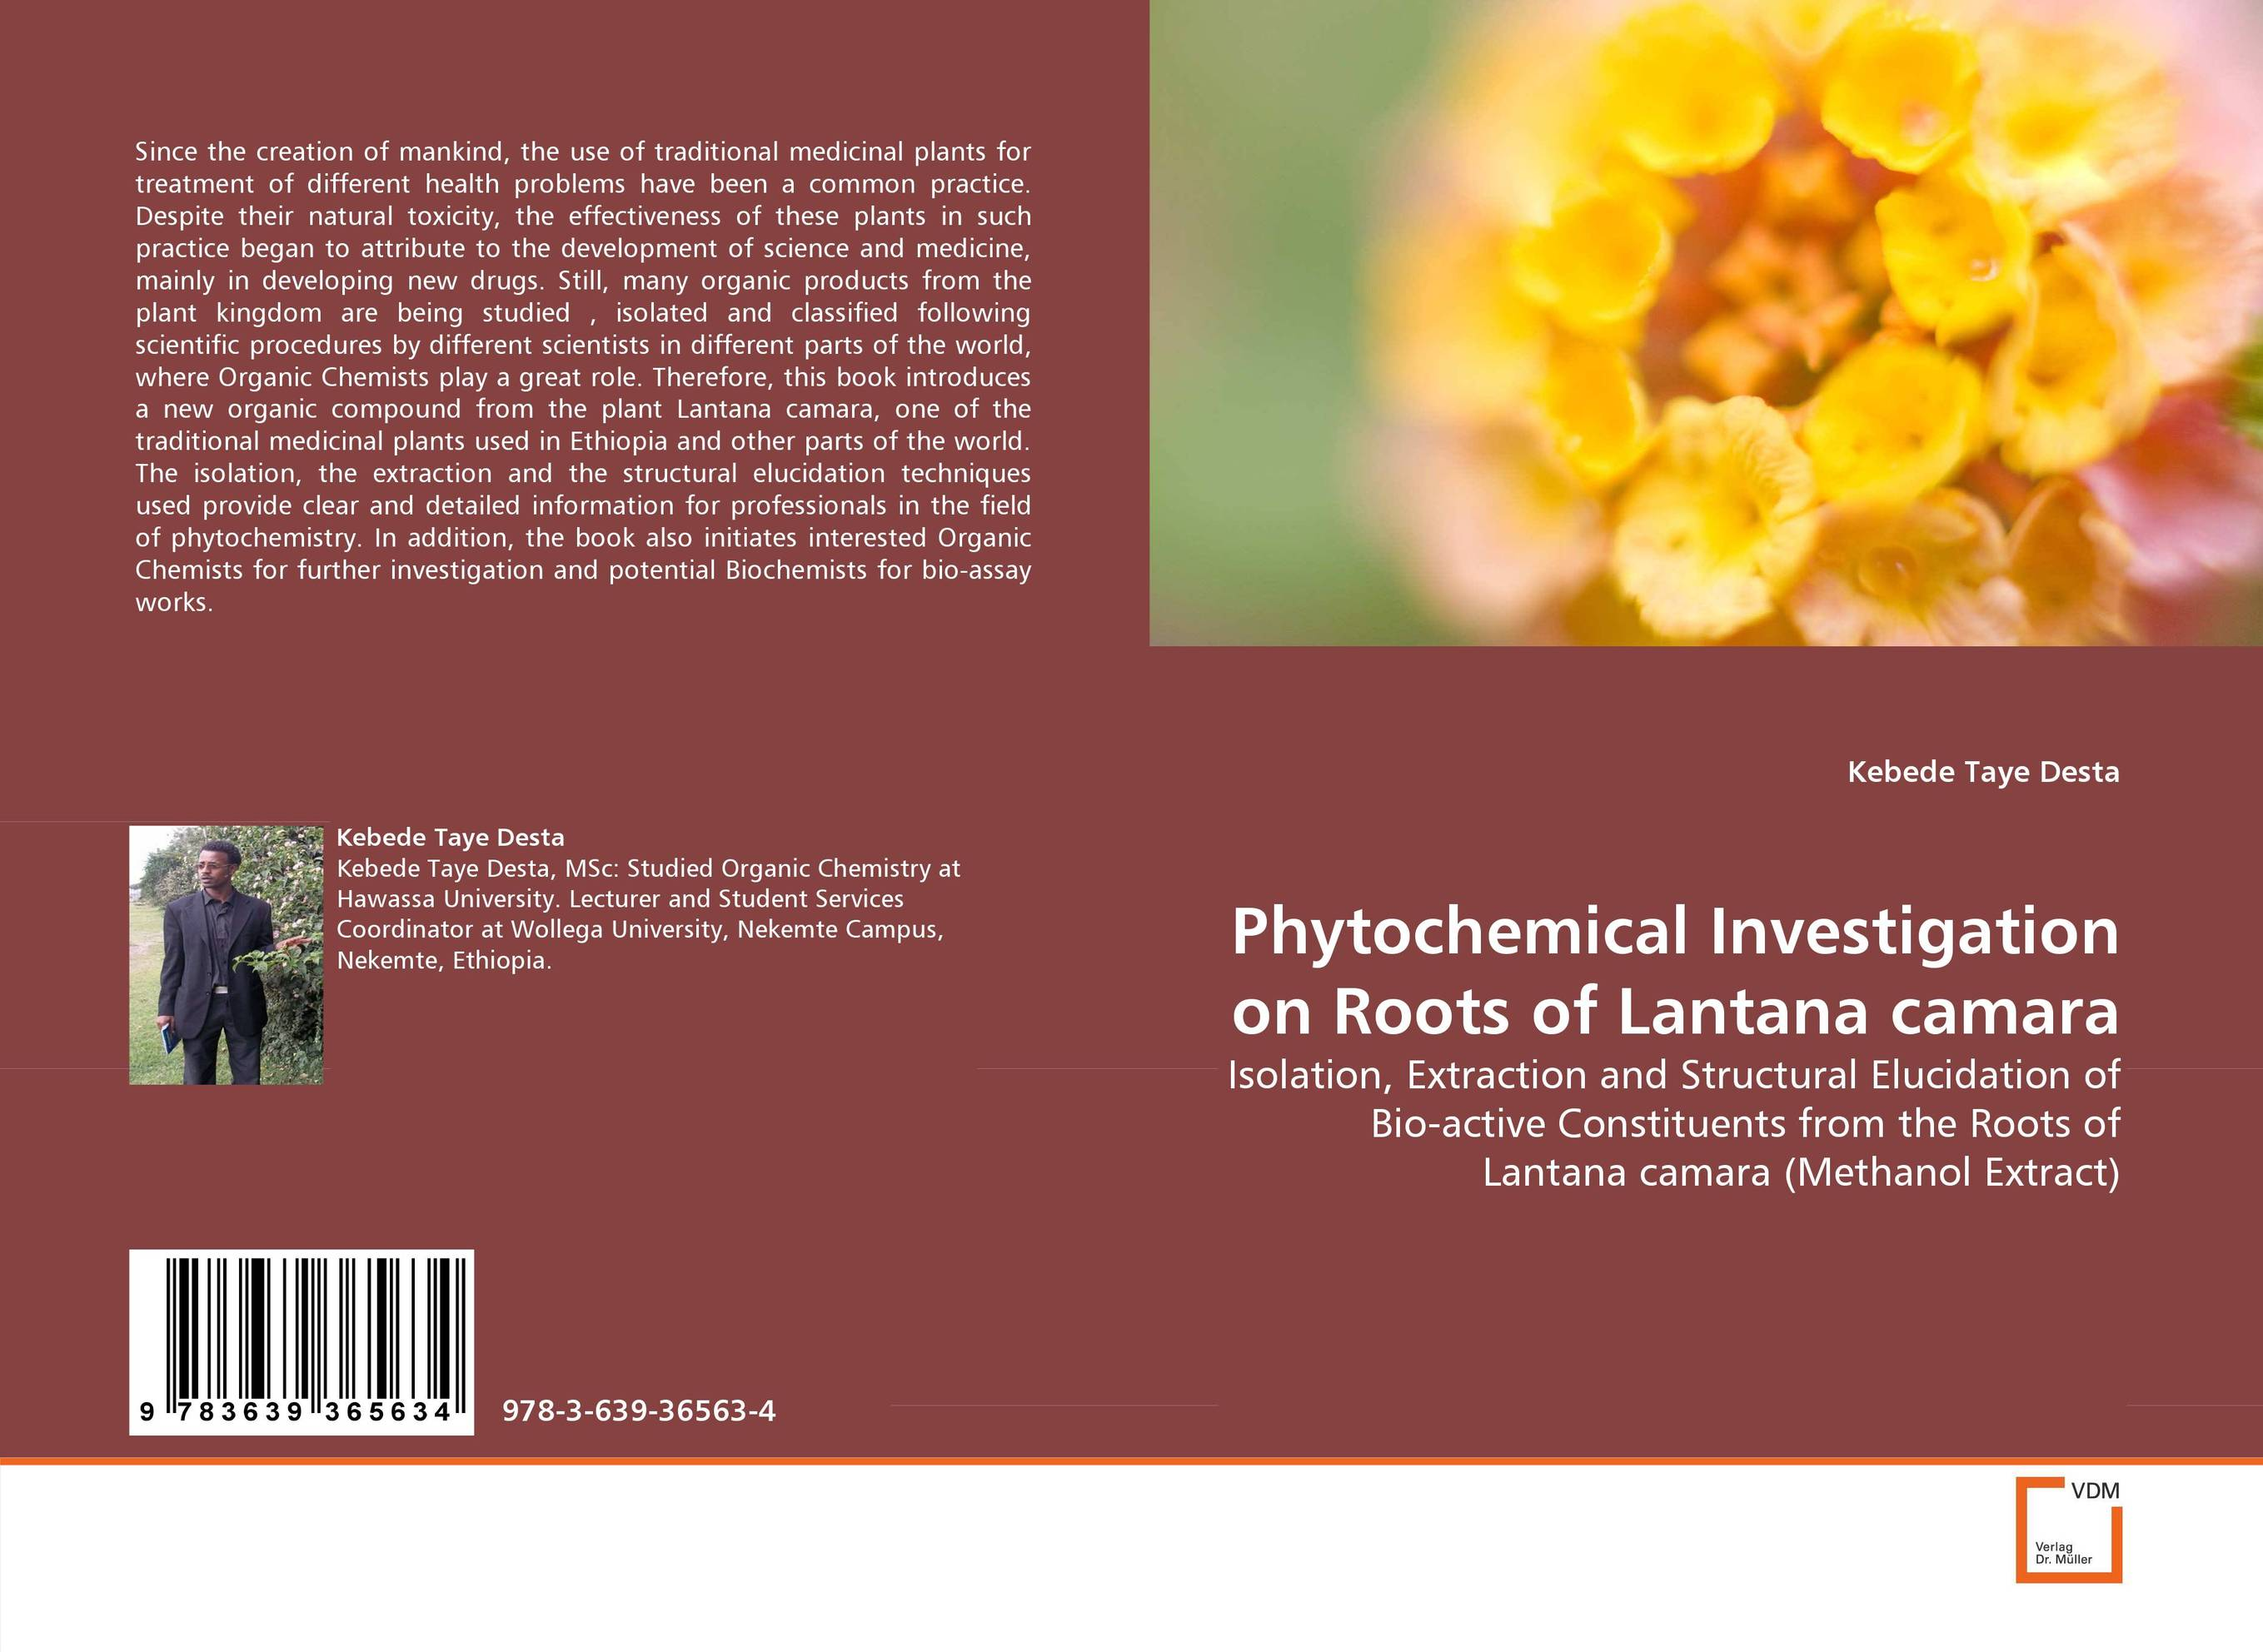 Phytochemical Investigation on Roots of Lantana camara